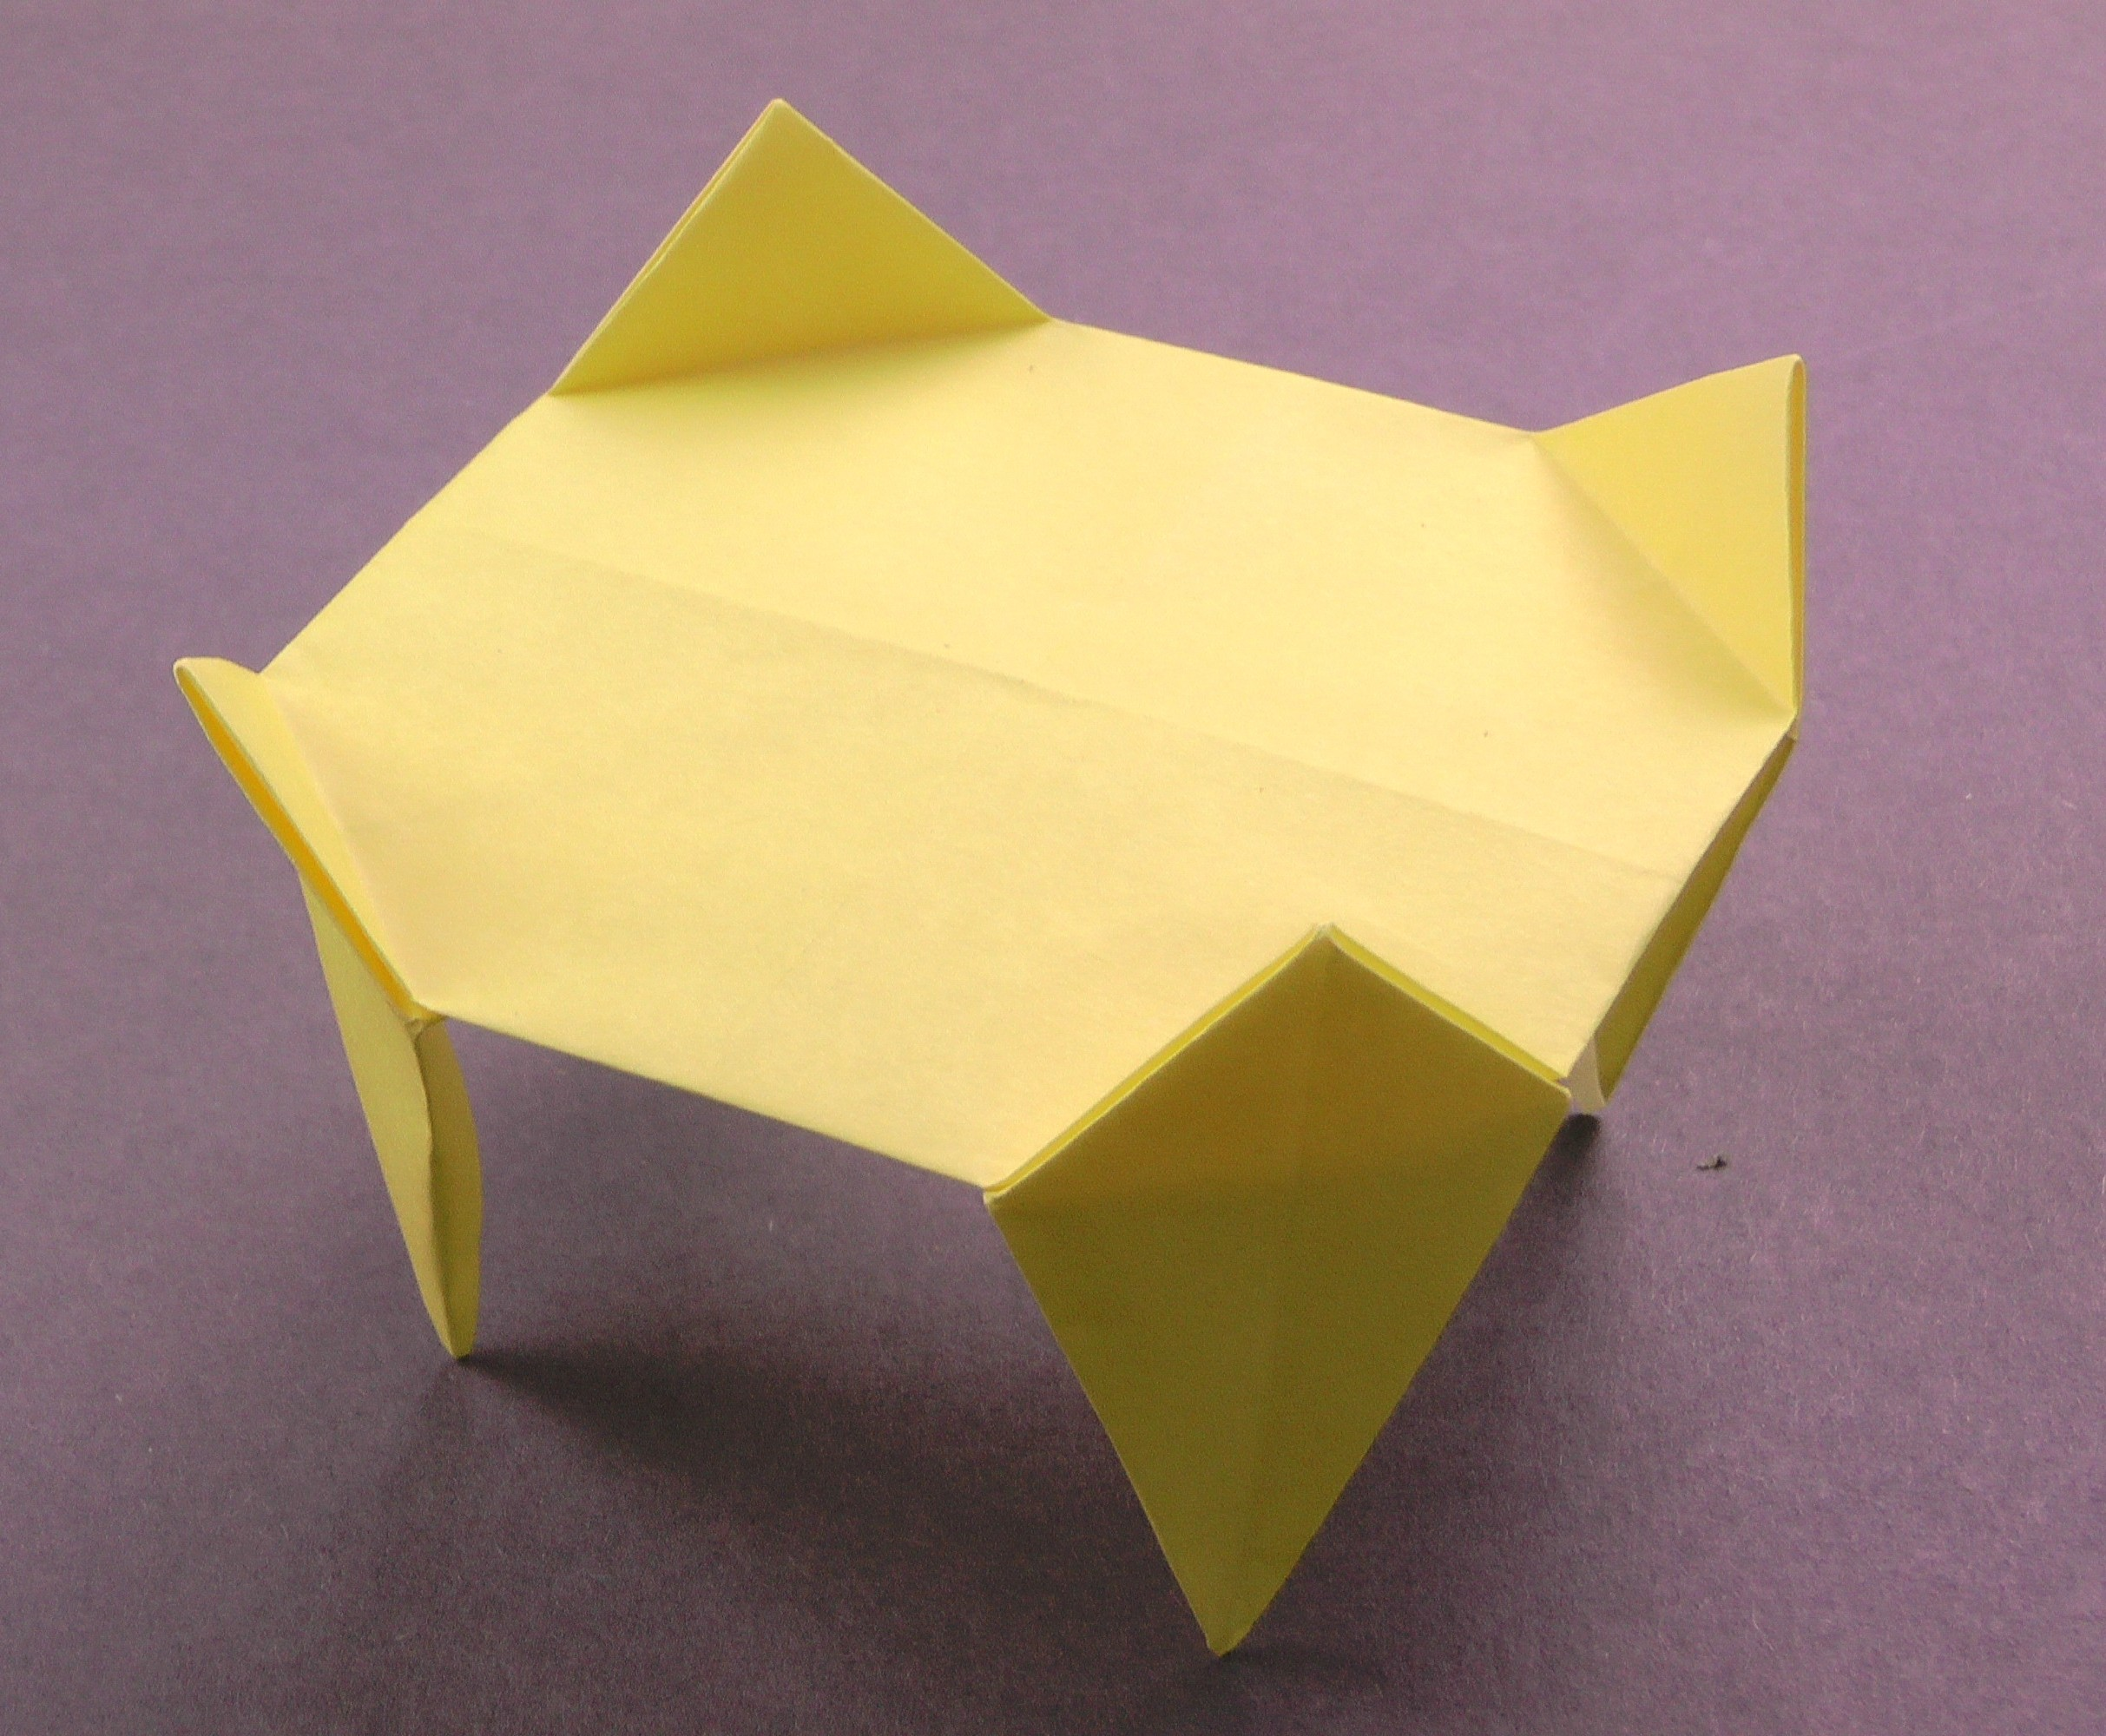 Charmant How To Make An Easy Origami Table